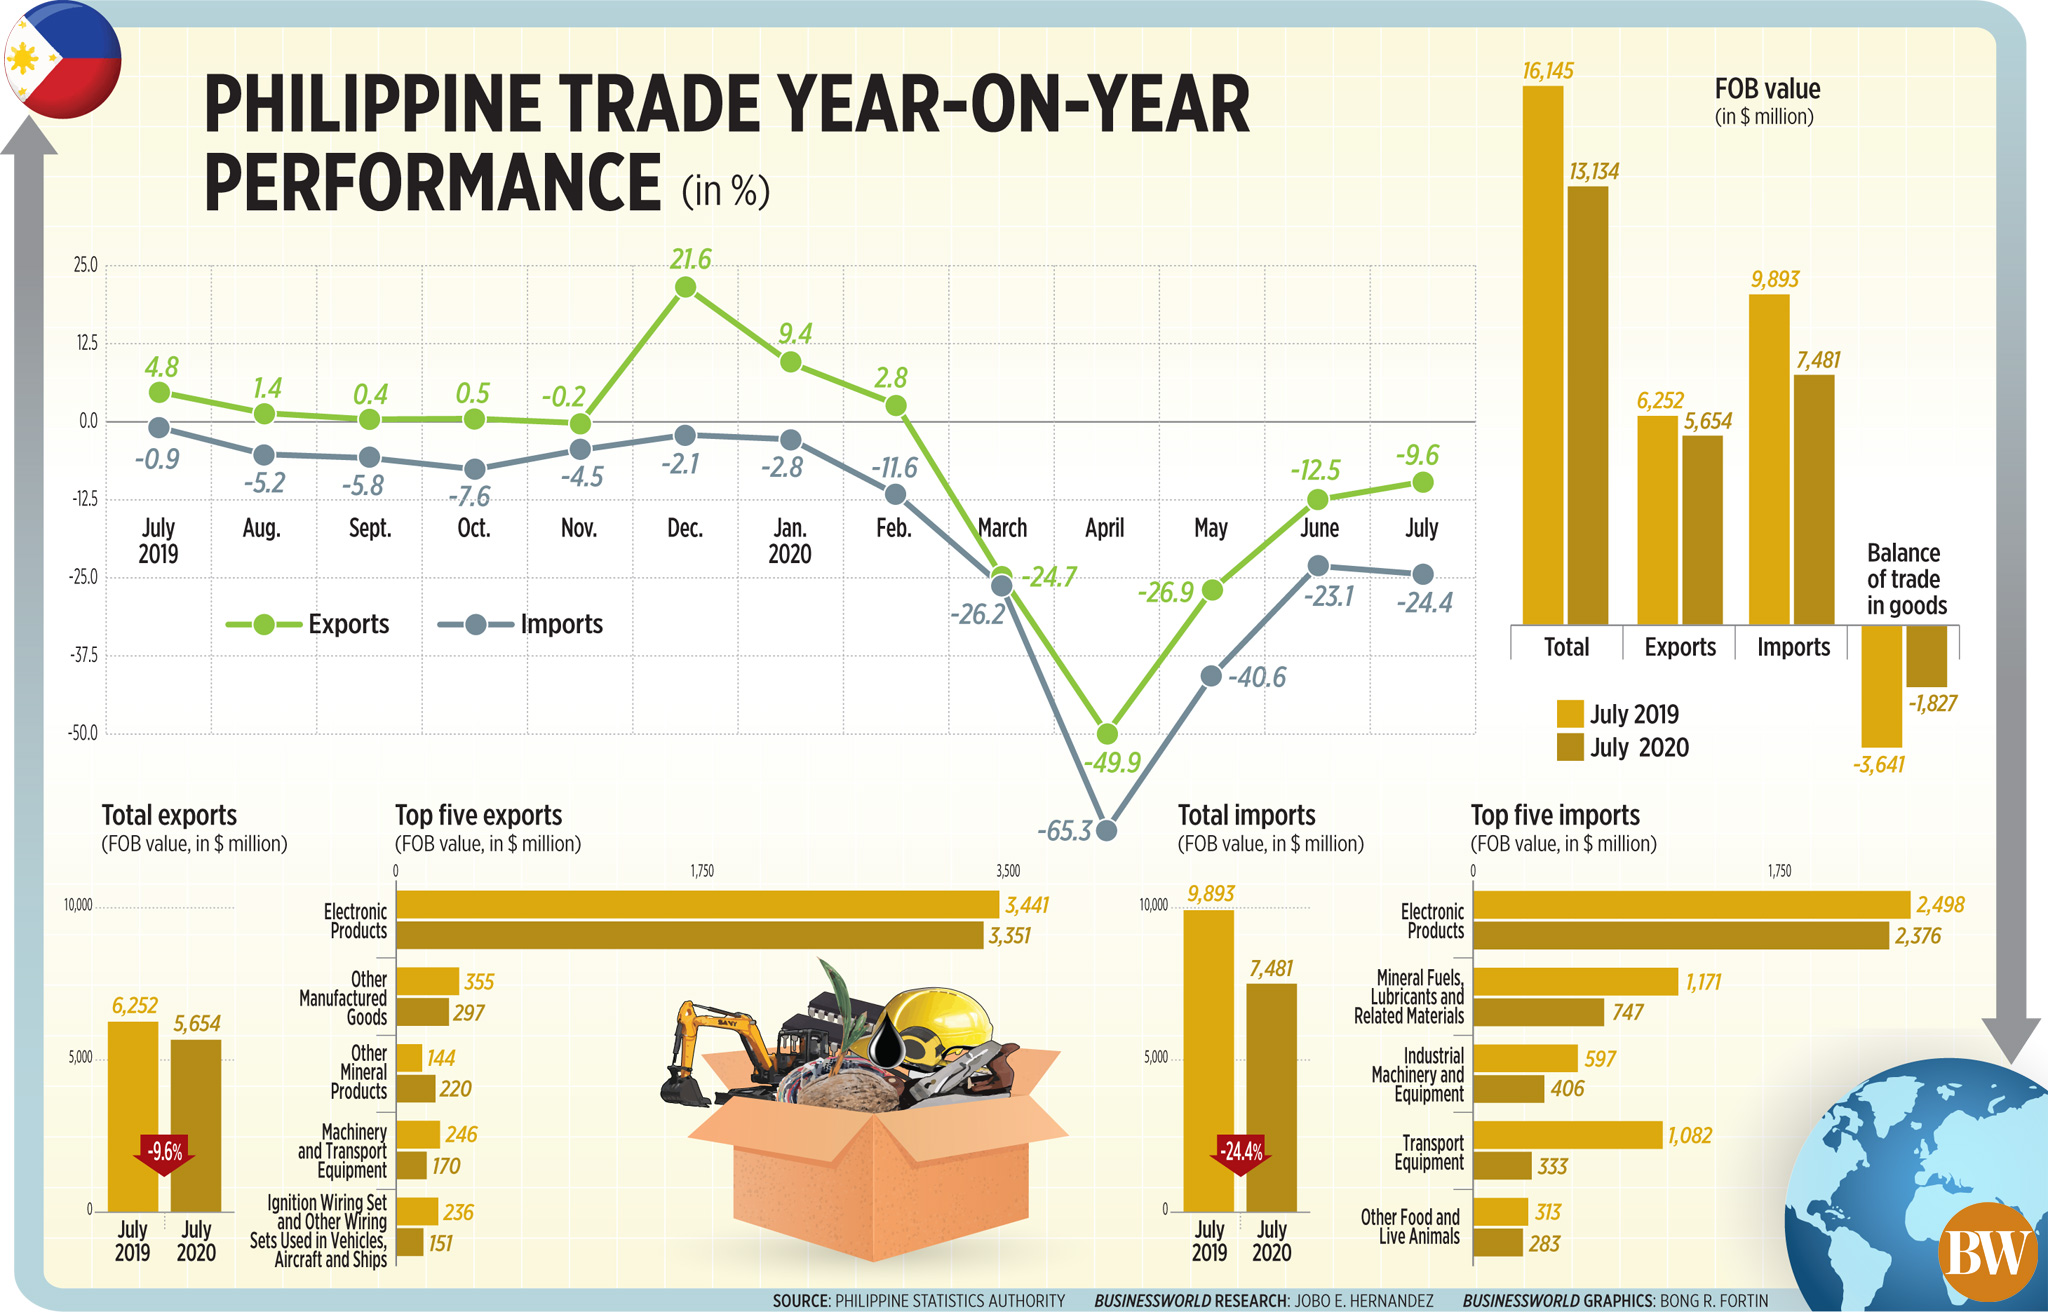 Philippine trade year-on-year performance (July 2020)